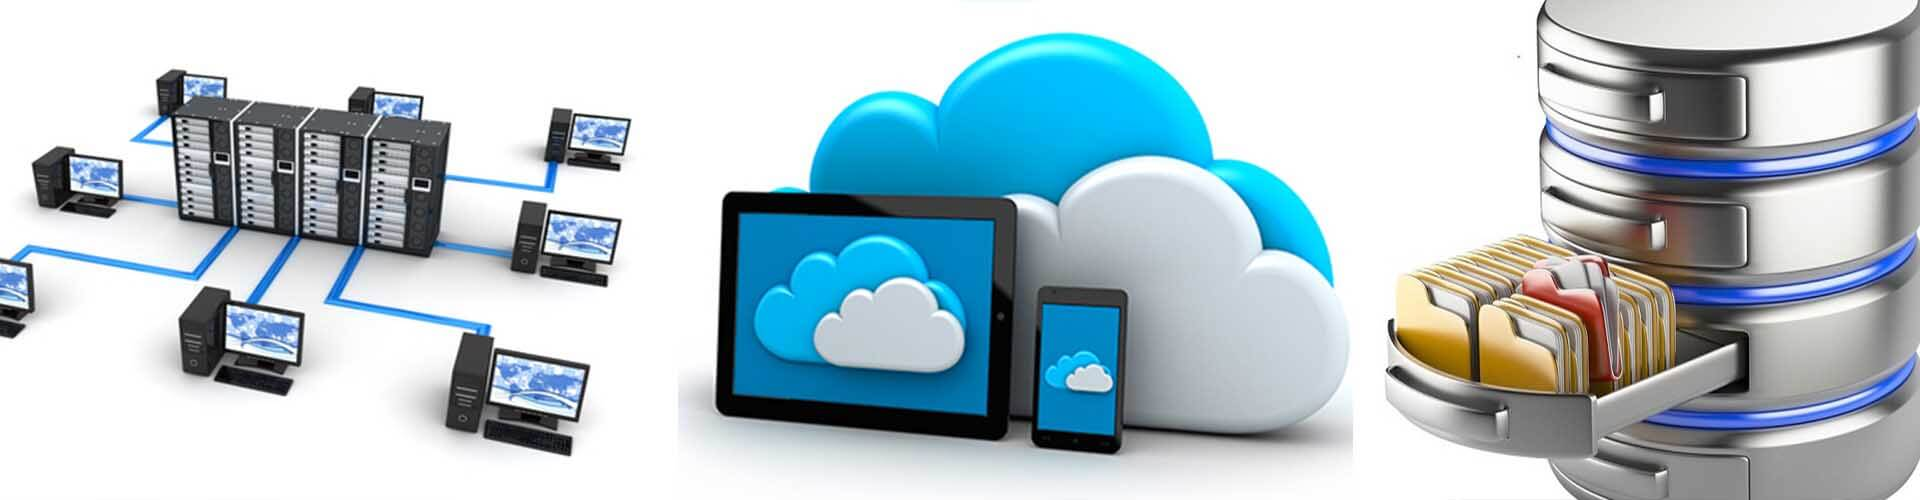 Free Secure Cloud Storage for all of Your Files!